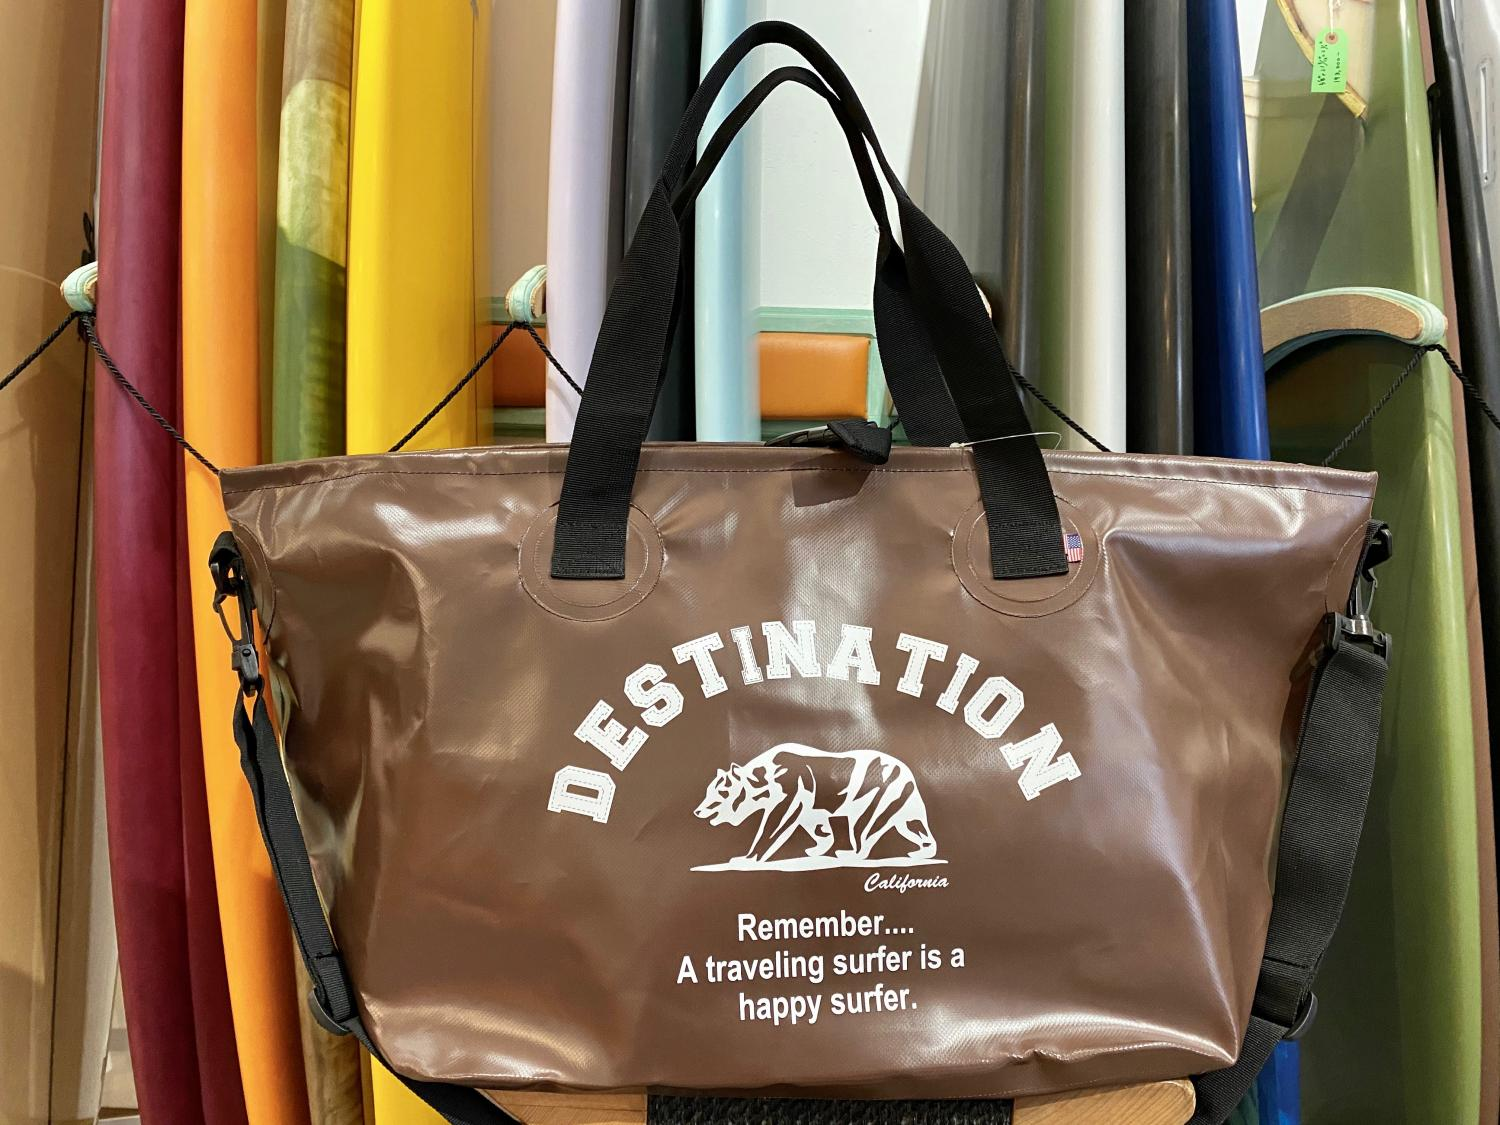 DESTINATION WET TOTE BAG BEAR LOGO BROWN